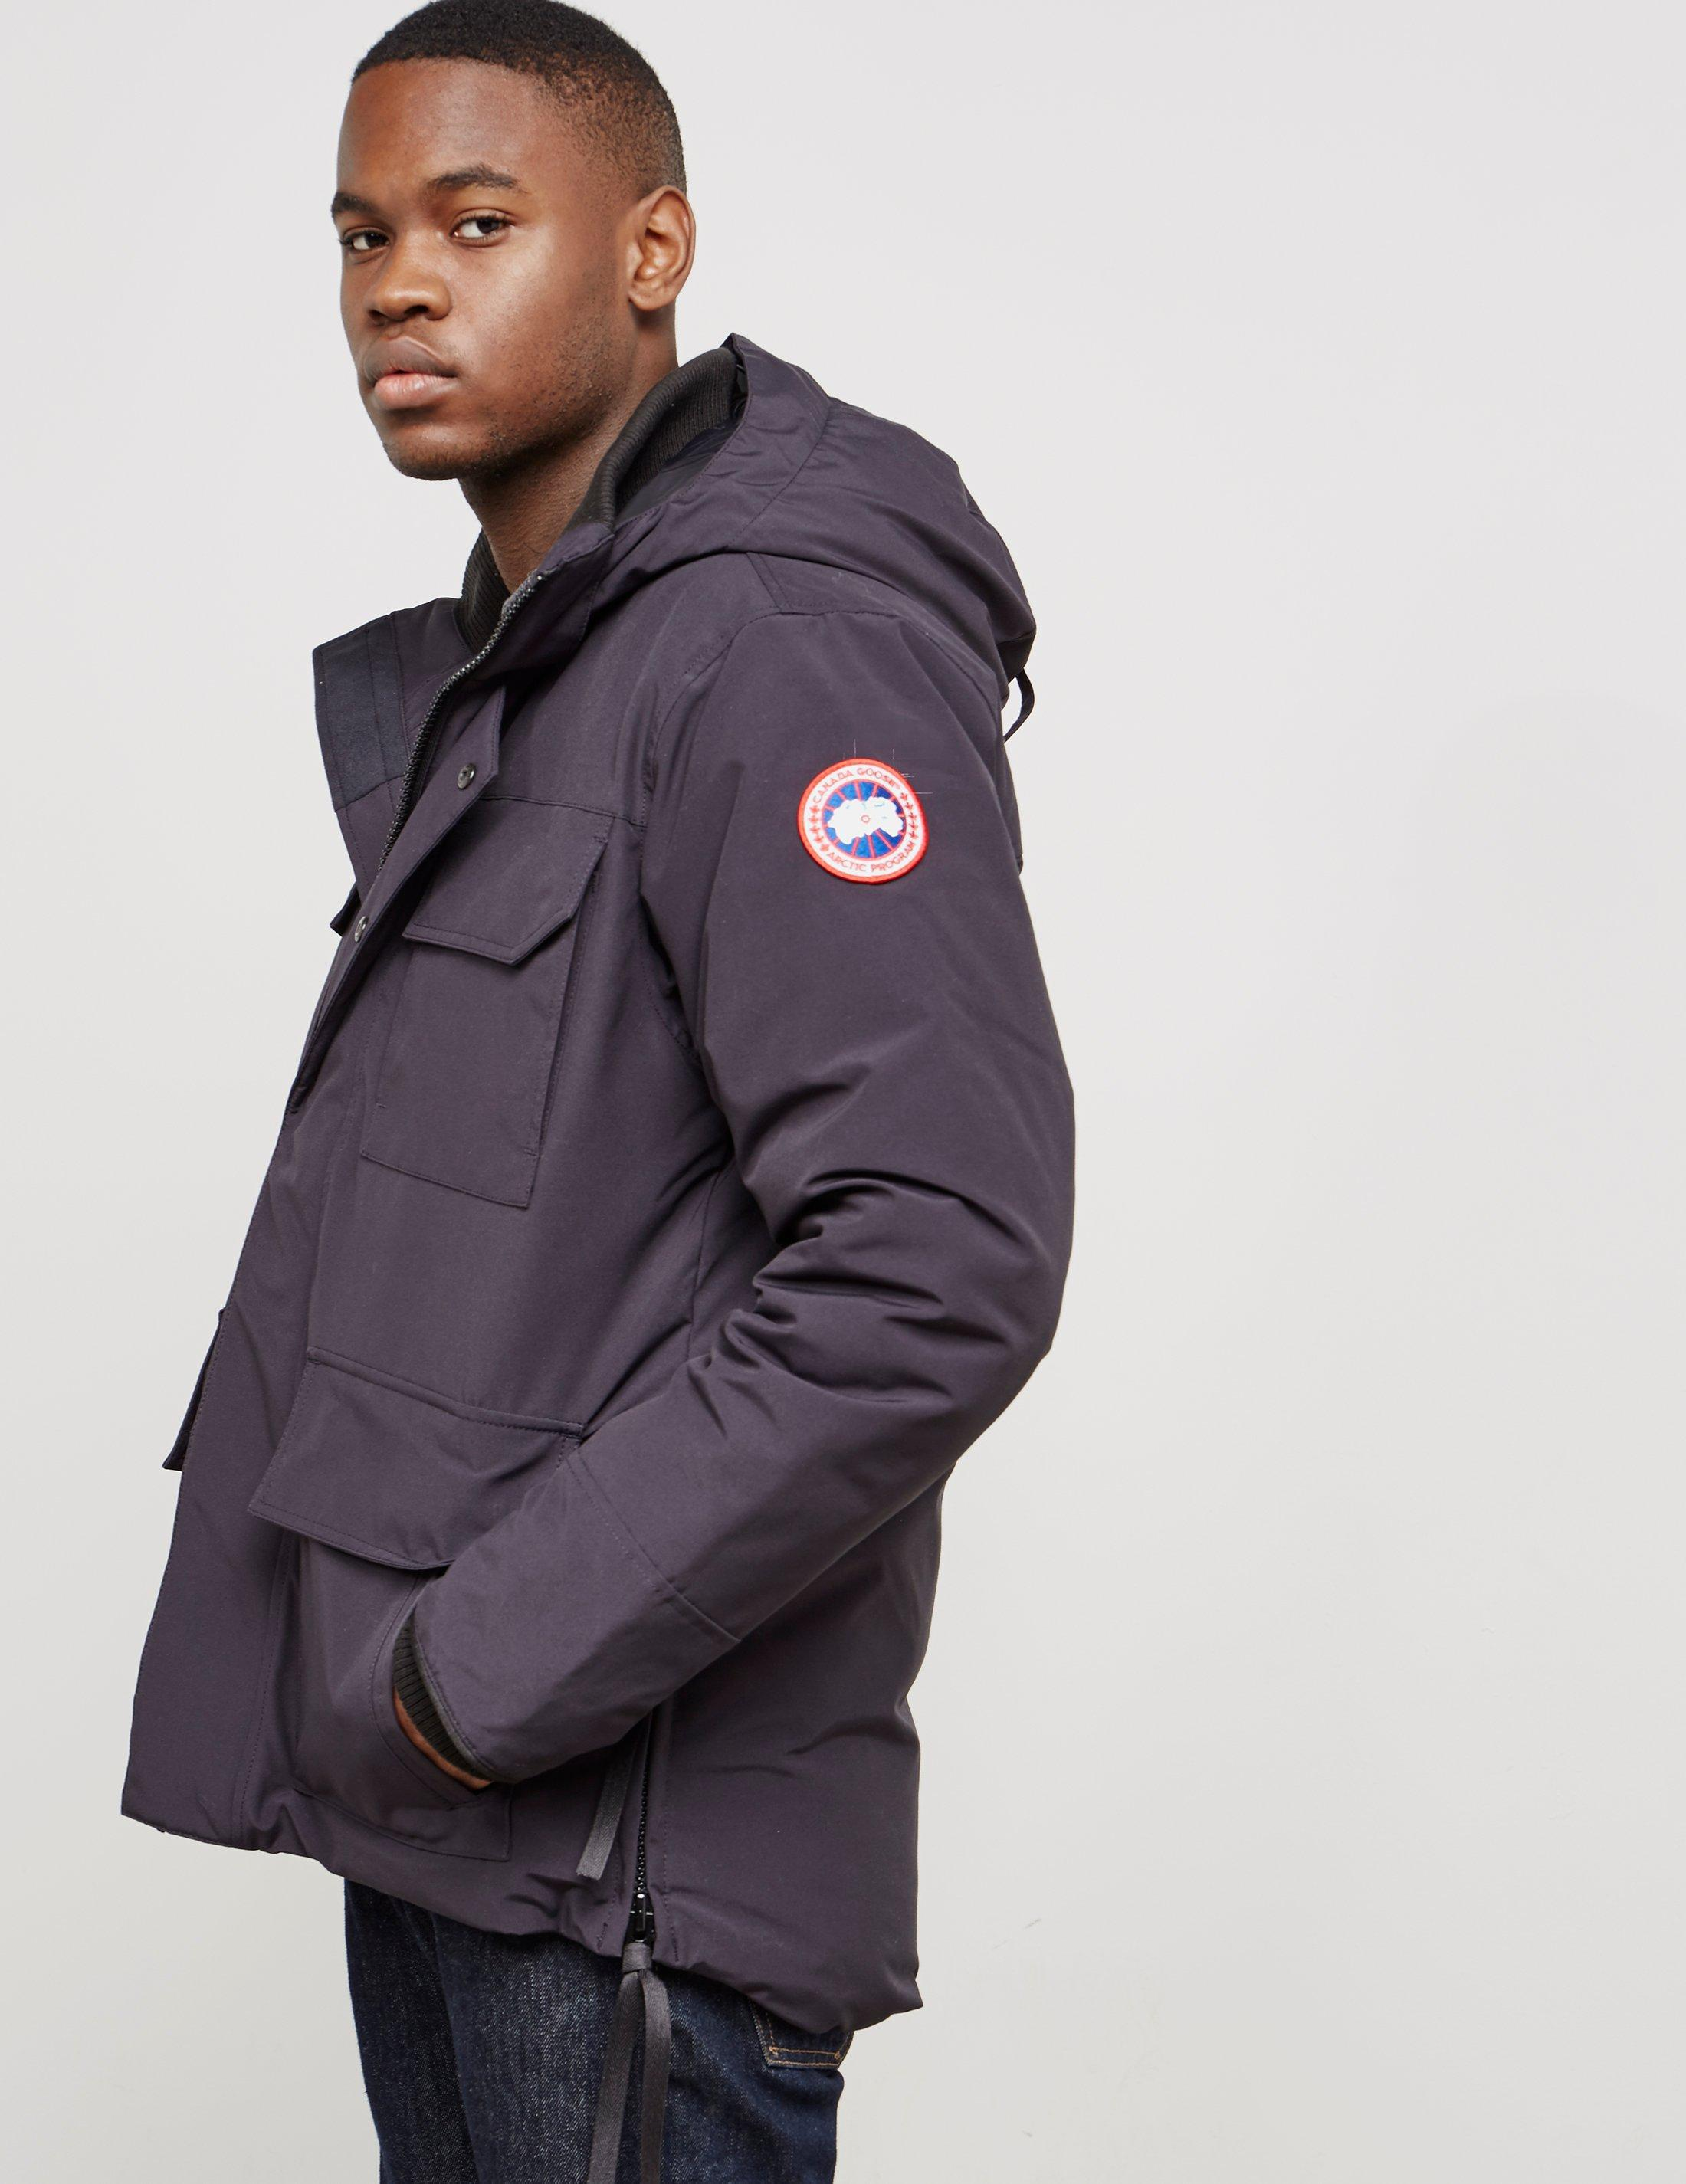 3dbe4a50621 Canada Goose Mens Maitland Padded Parka Jacket Navy Blue for men